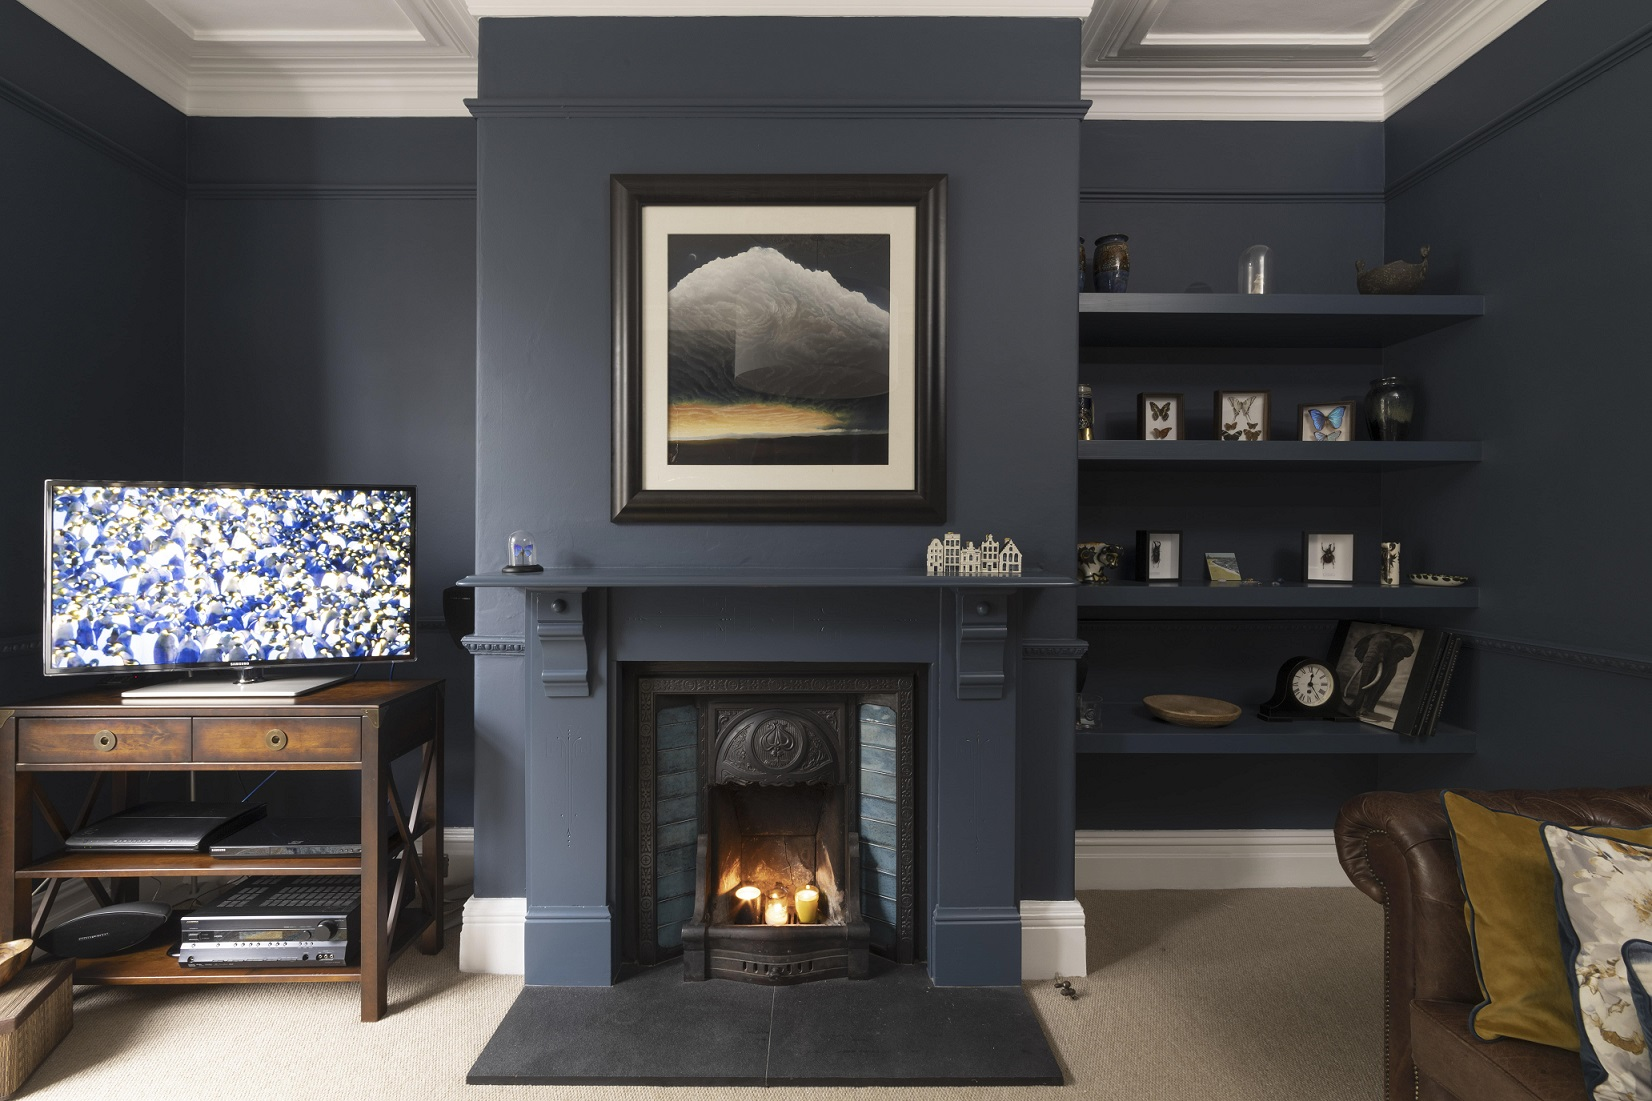 Inky navy walls give warmth to this Victorian family sitting room